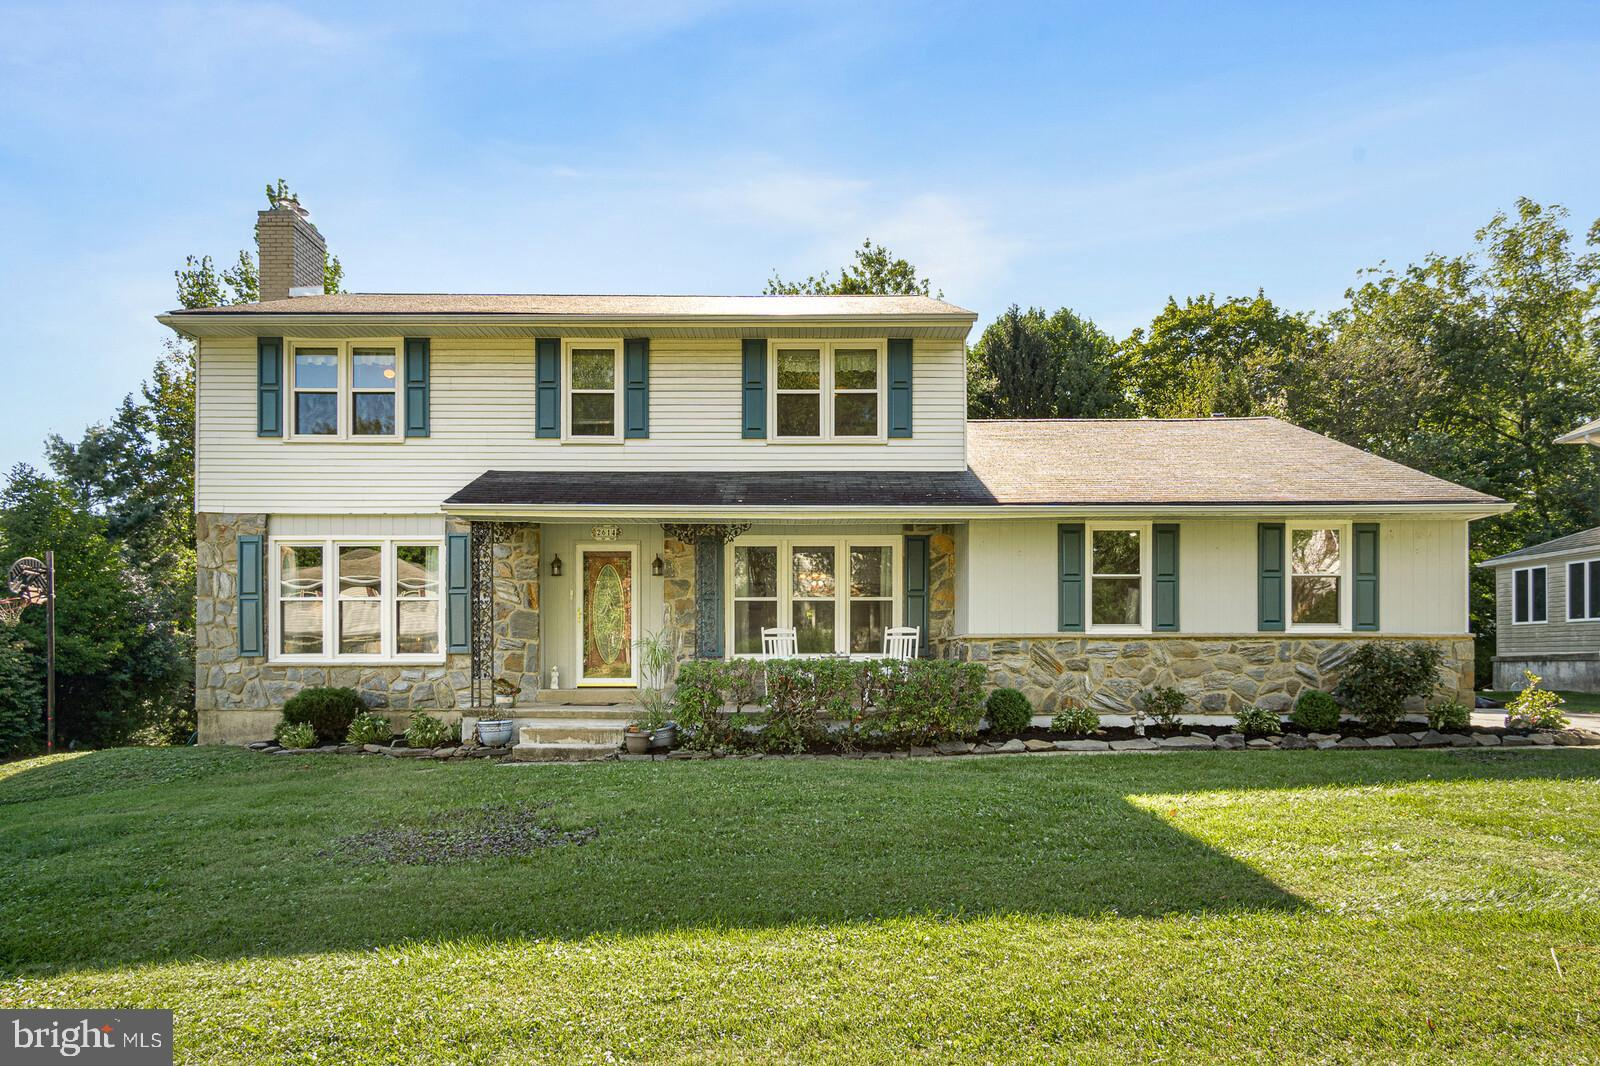 """Come see this backyard oasis with a stunning in-ground pool! Classic stone and siding 4BR, 2.5 BA Regent model colonial located in a prime North Wilmington location! Beautiful refinished hardwood floors (2019) throughout, generous room sizes, and upgrades galore check all of the boxes! The backyard is a perfect blend of ample yard space, a large patio area, and the inground pool with new pump (2021), updated liner with insulation (2015). The front walkway and charming front porch lead you to the spacious center hall foyer. The welcoming living room has crown molding and a newly rebuilt wood-burning fireplace. The formal dining room features chair rail and crown molding and opens to the completely renovated kitchen! The gorgeous eat-in kitchen features 42"""" wood cabinetry, beautiful granite counters, luxury vinyl tile flooring, custom tile backsplash, recessed lighting, and updated appliances. The family room is spacious and inviting with hardwoods and stone fireplace. The main floor office, charming and renovated powder room with shiplap walls, and convenient level laundry room round out the main level. The beautiful wood staircase guides you to the second floor with a large hallway and a bedroom located in each corner of the home. The spacious primary suite has a walk-in customized California closet plus a luxurious spa-like bath (2018) with a tiled floor and shower with frameless glass door, gorgeous vanity, fixtures, and lights. Three additional bedrooms and a bonus upstairs room share the beautifully updated tiled hall bath with wood vanity and heated whirlpool tub. The basement is spacious and offers multiple uses and ample storage and was recently updated with new carpeting. Additional features include replacement windows; new central air (2019), hybrid heat-pump (2014) with oil backup. Don't miss this lovely home!"""